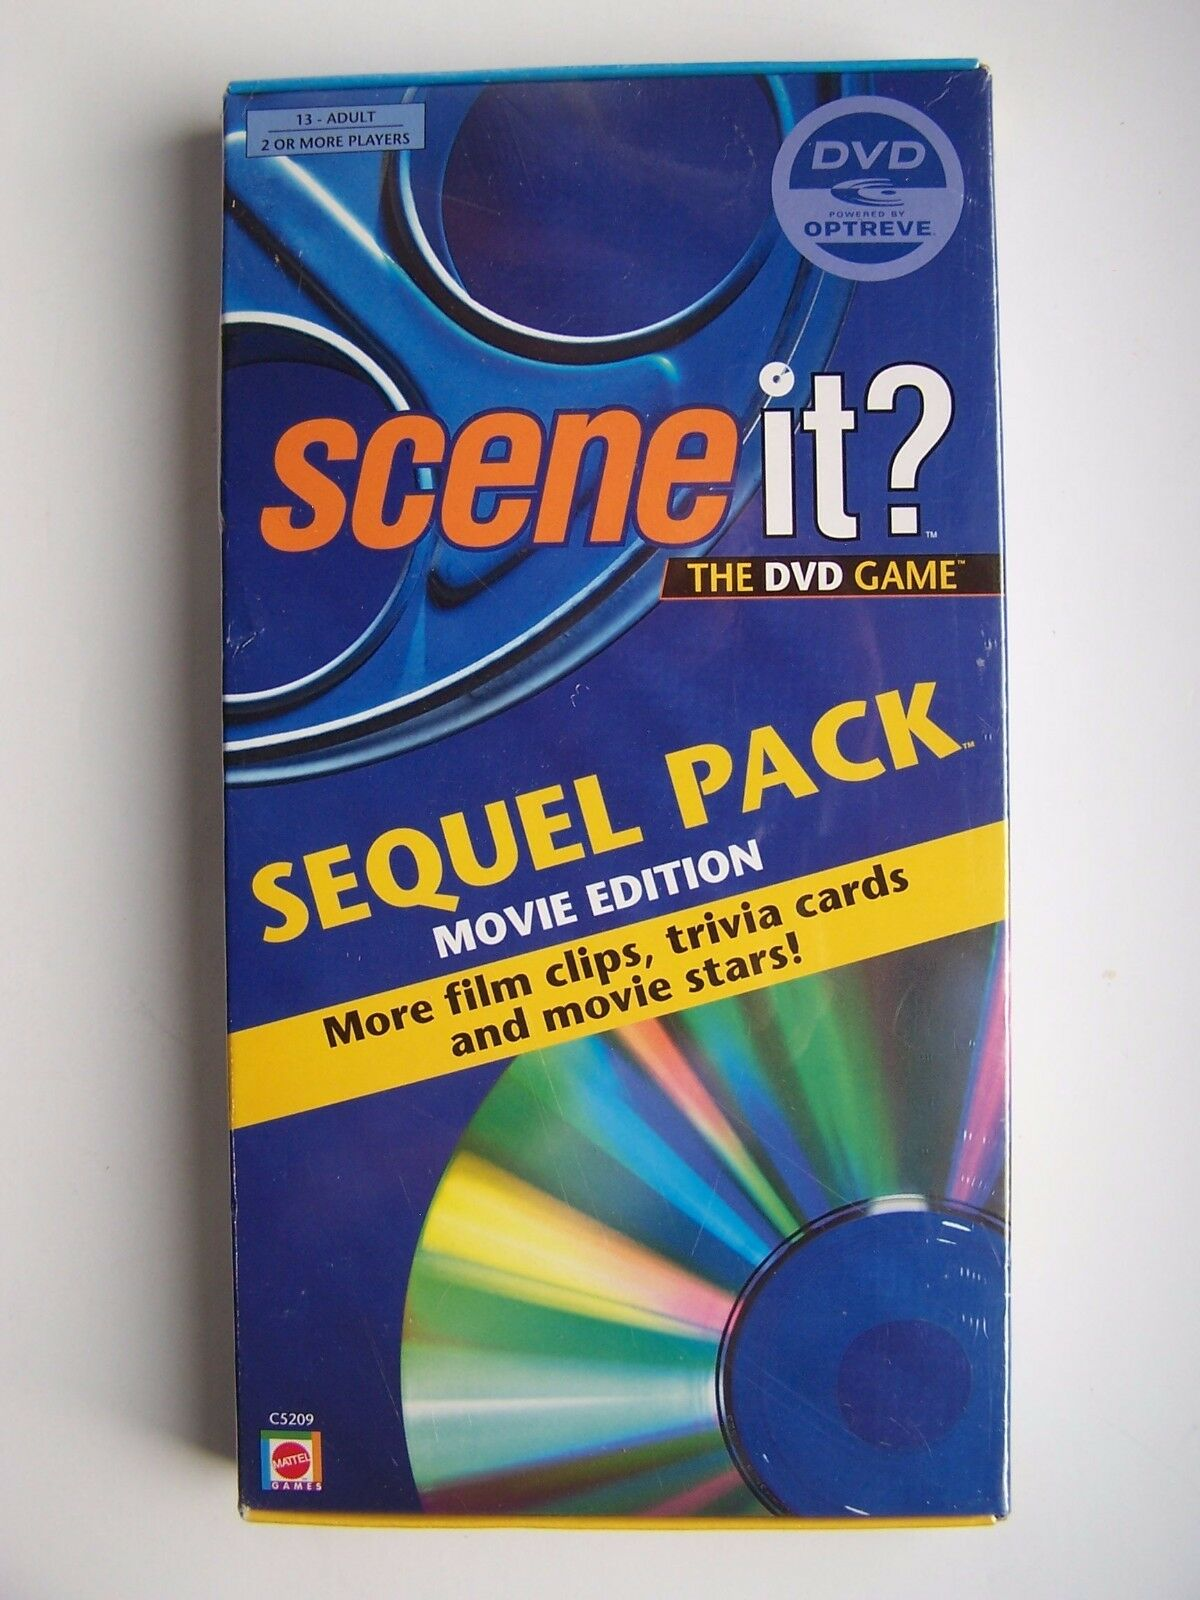 Scene It: Sequel Pack (Movie Edition): More Film Clips,